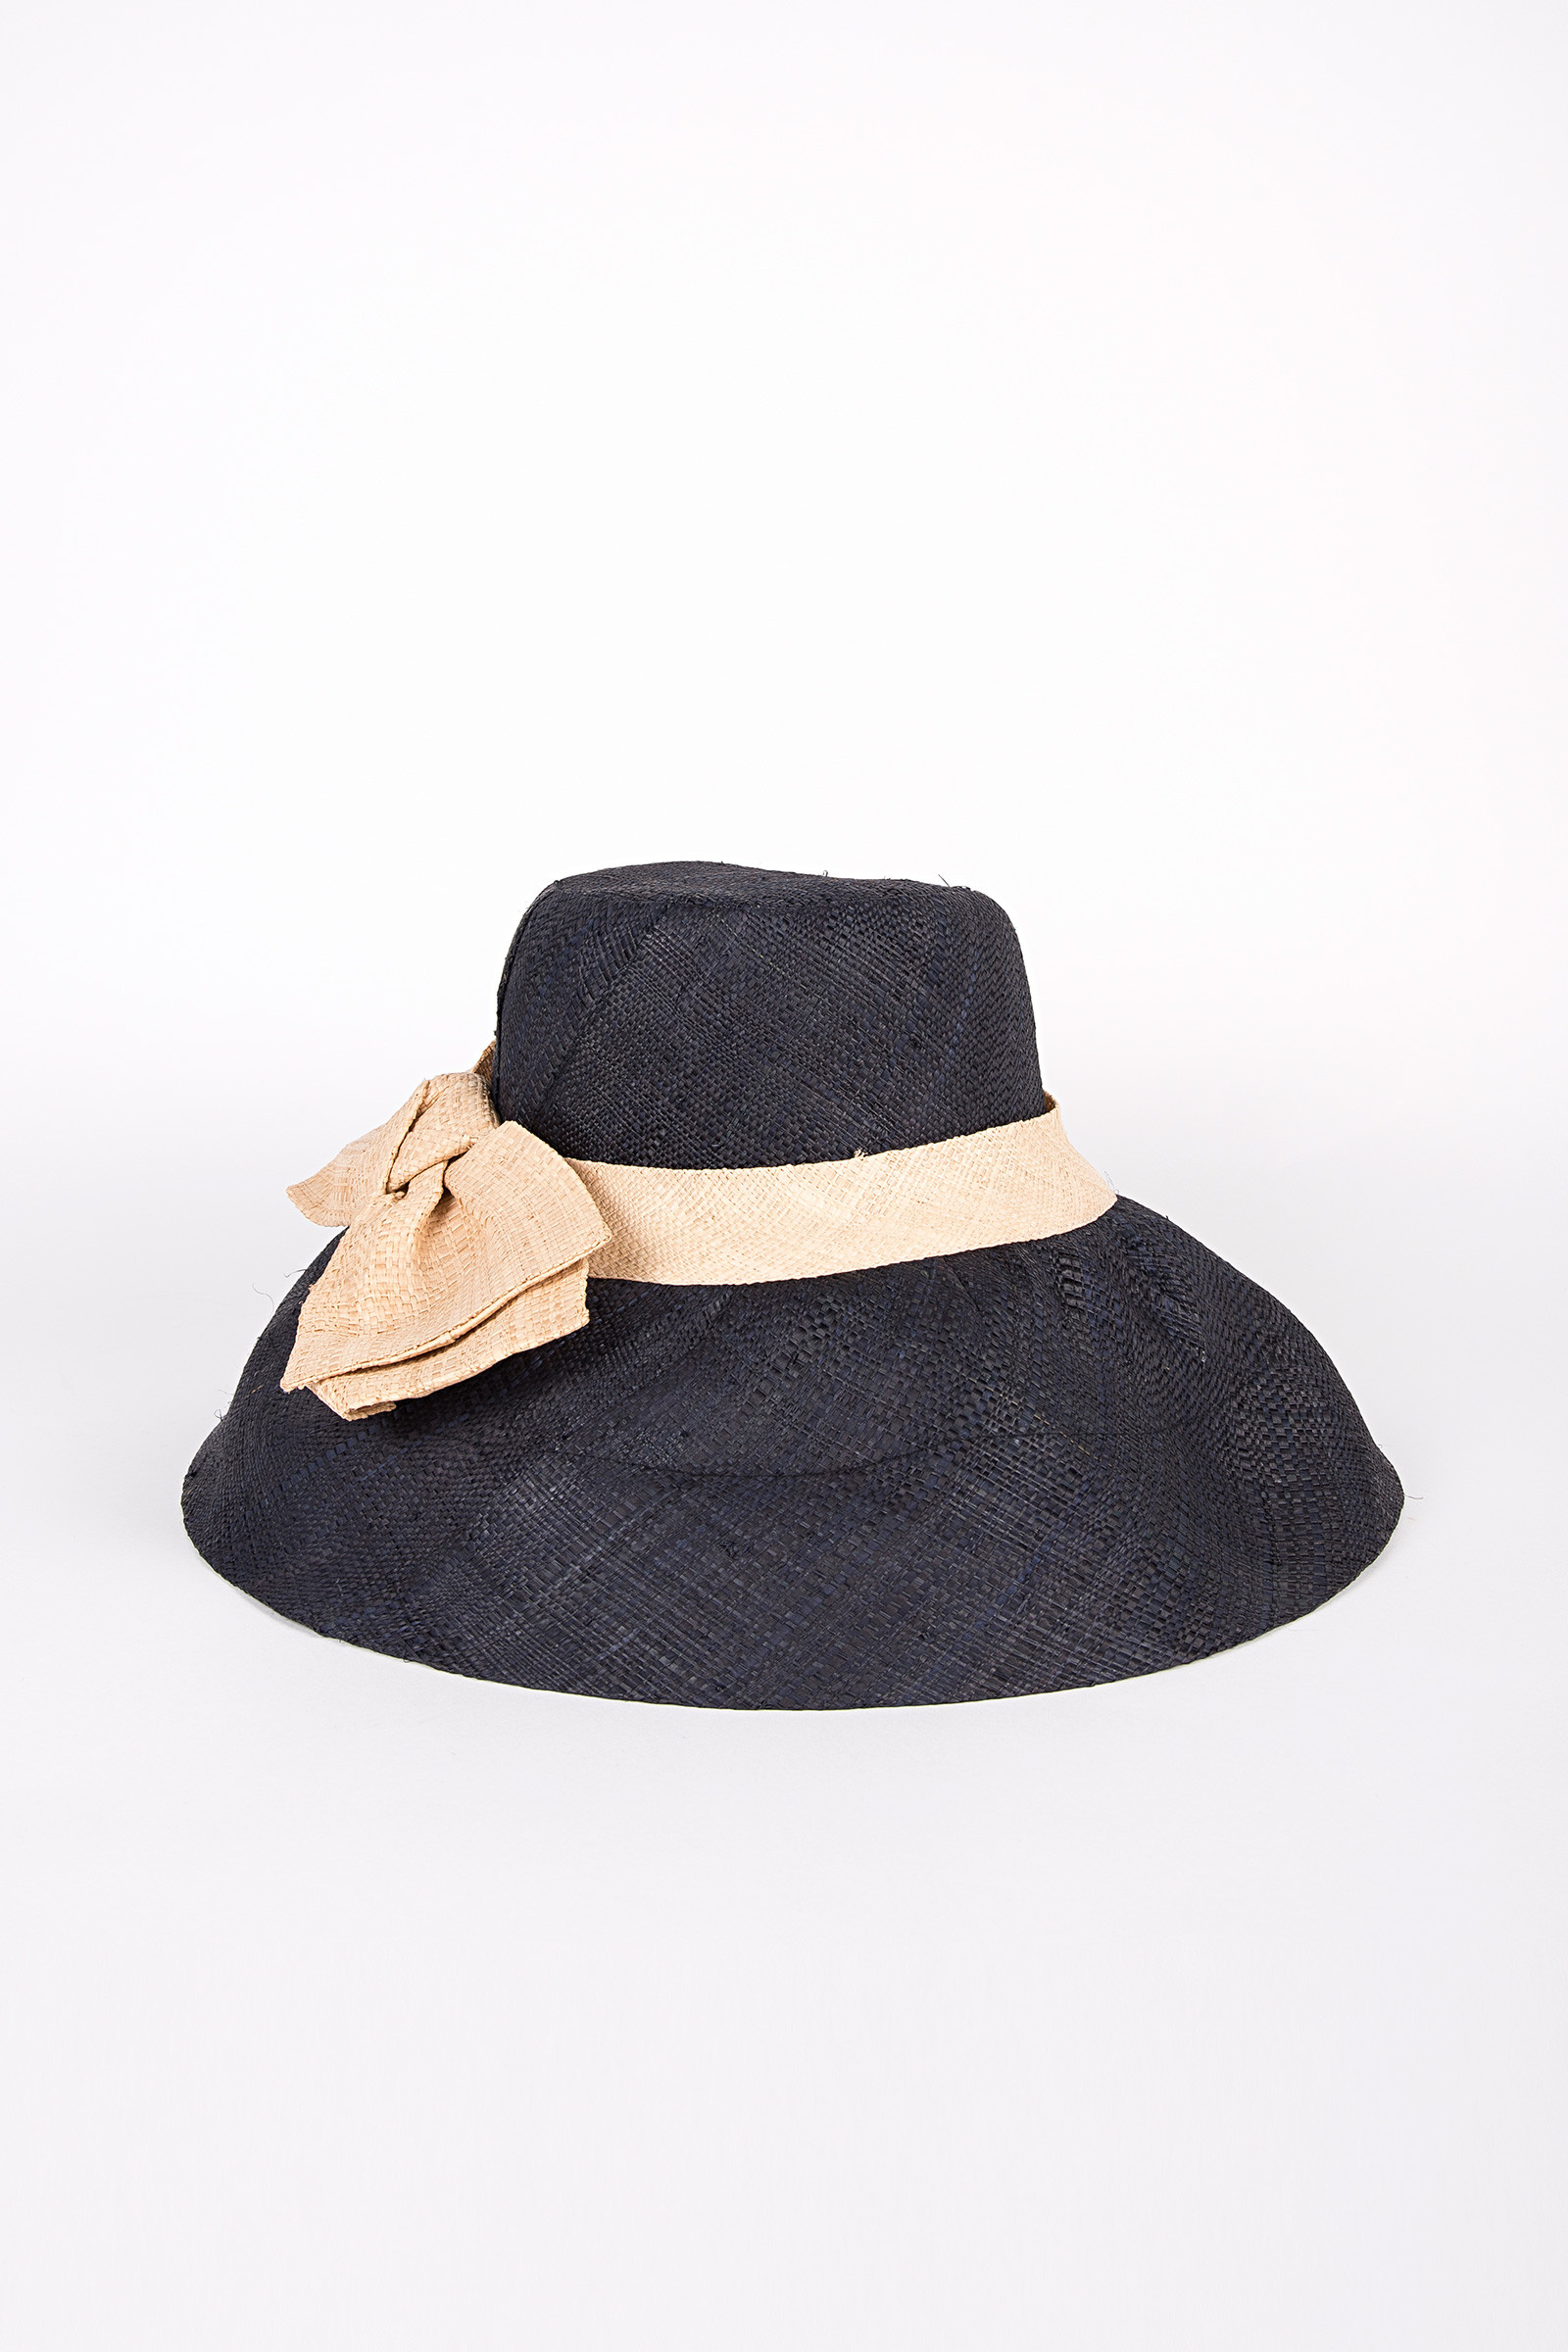 Black Hat with Bow cover